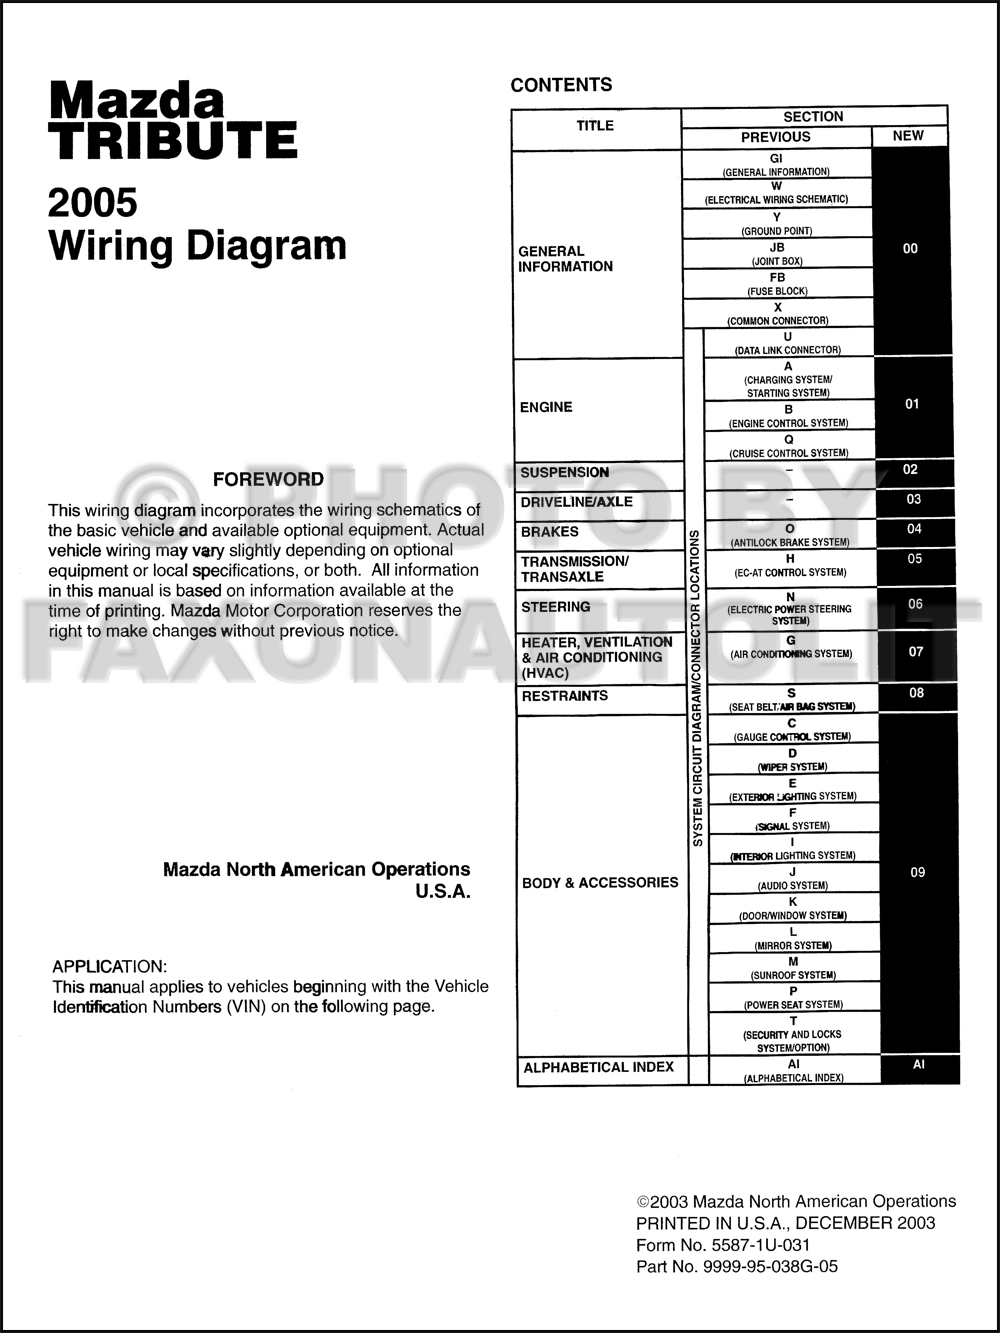 Fuse Box Mazda Tribute 2005 Wiring Diagrams Miata Diagram Library Rh 39 Codingcommunity De Location